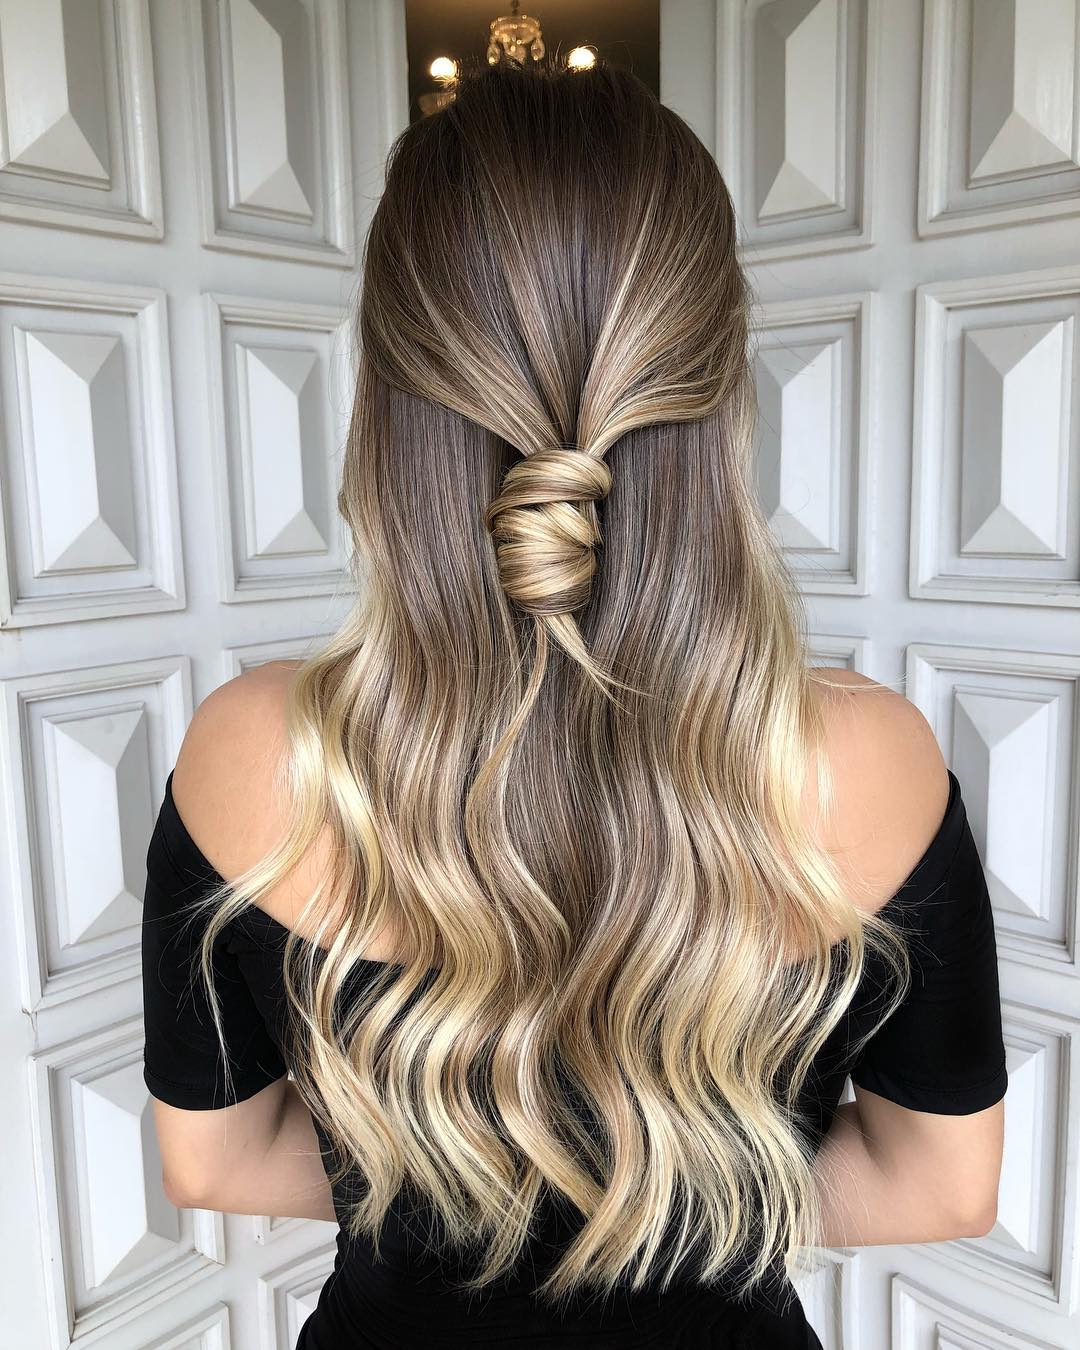 long ombre hairstyles 2017 hairstyles. Black Bedroom Furniture Sets. Home Design Ideas